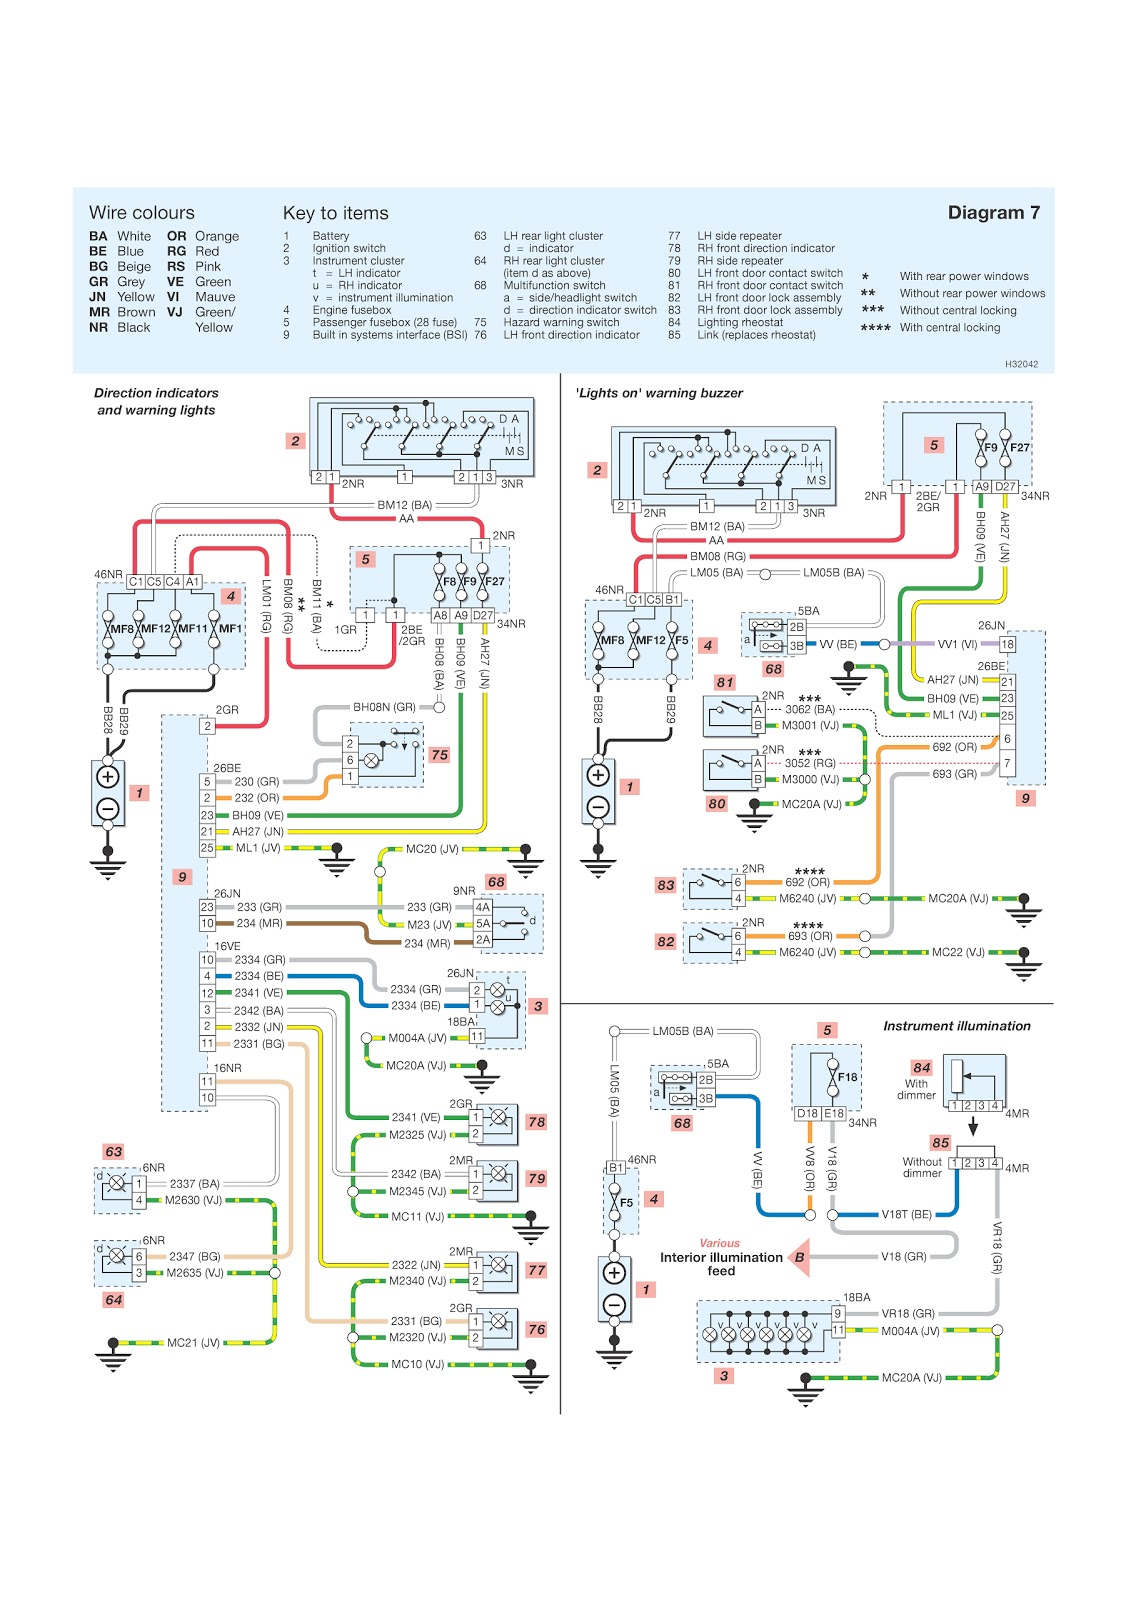 peugeot 206 wiring schematic interior lighting continued ... peugeot 206 gti wiring diagram peugeot 206 headlight wiring diagram